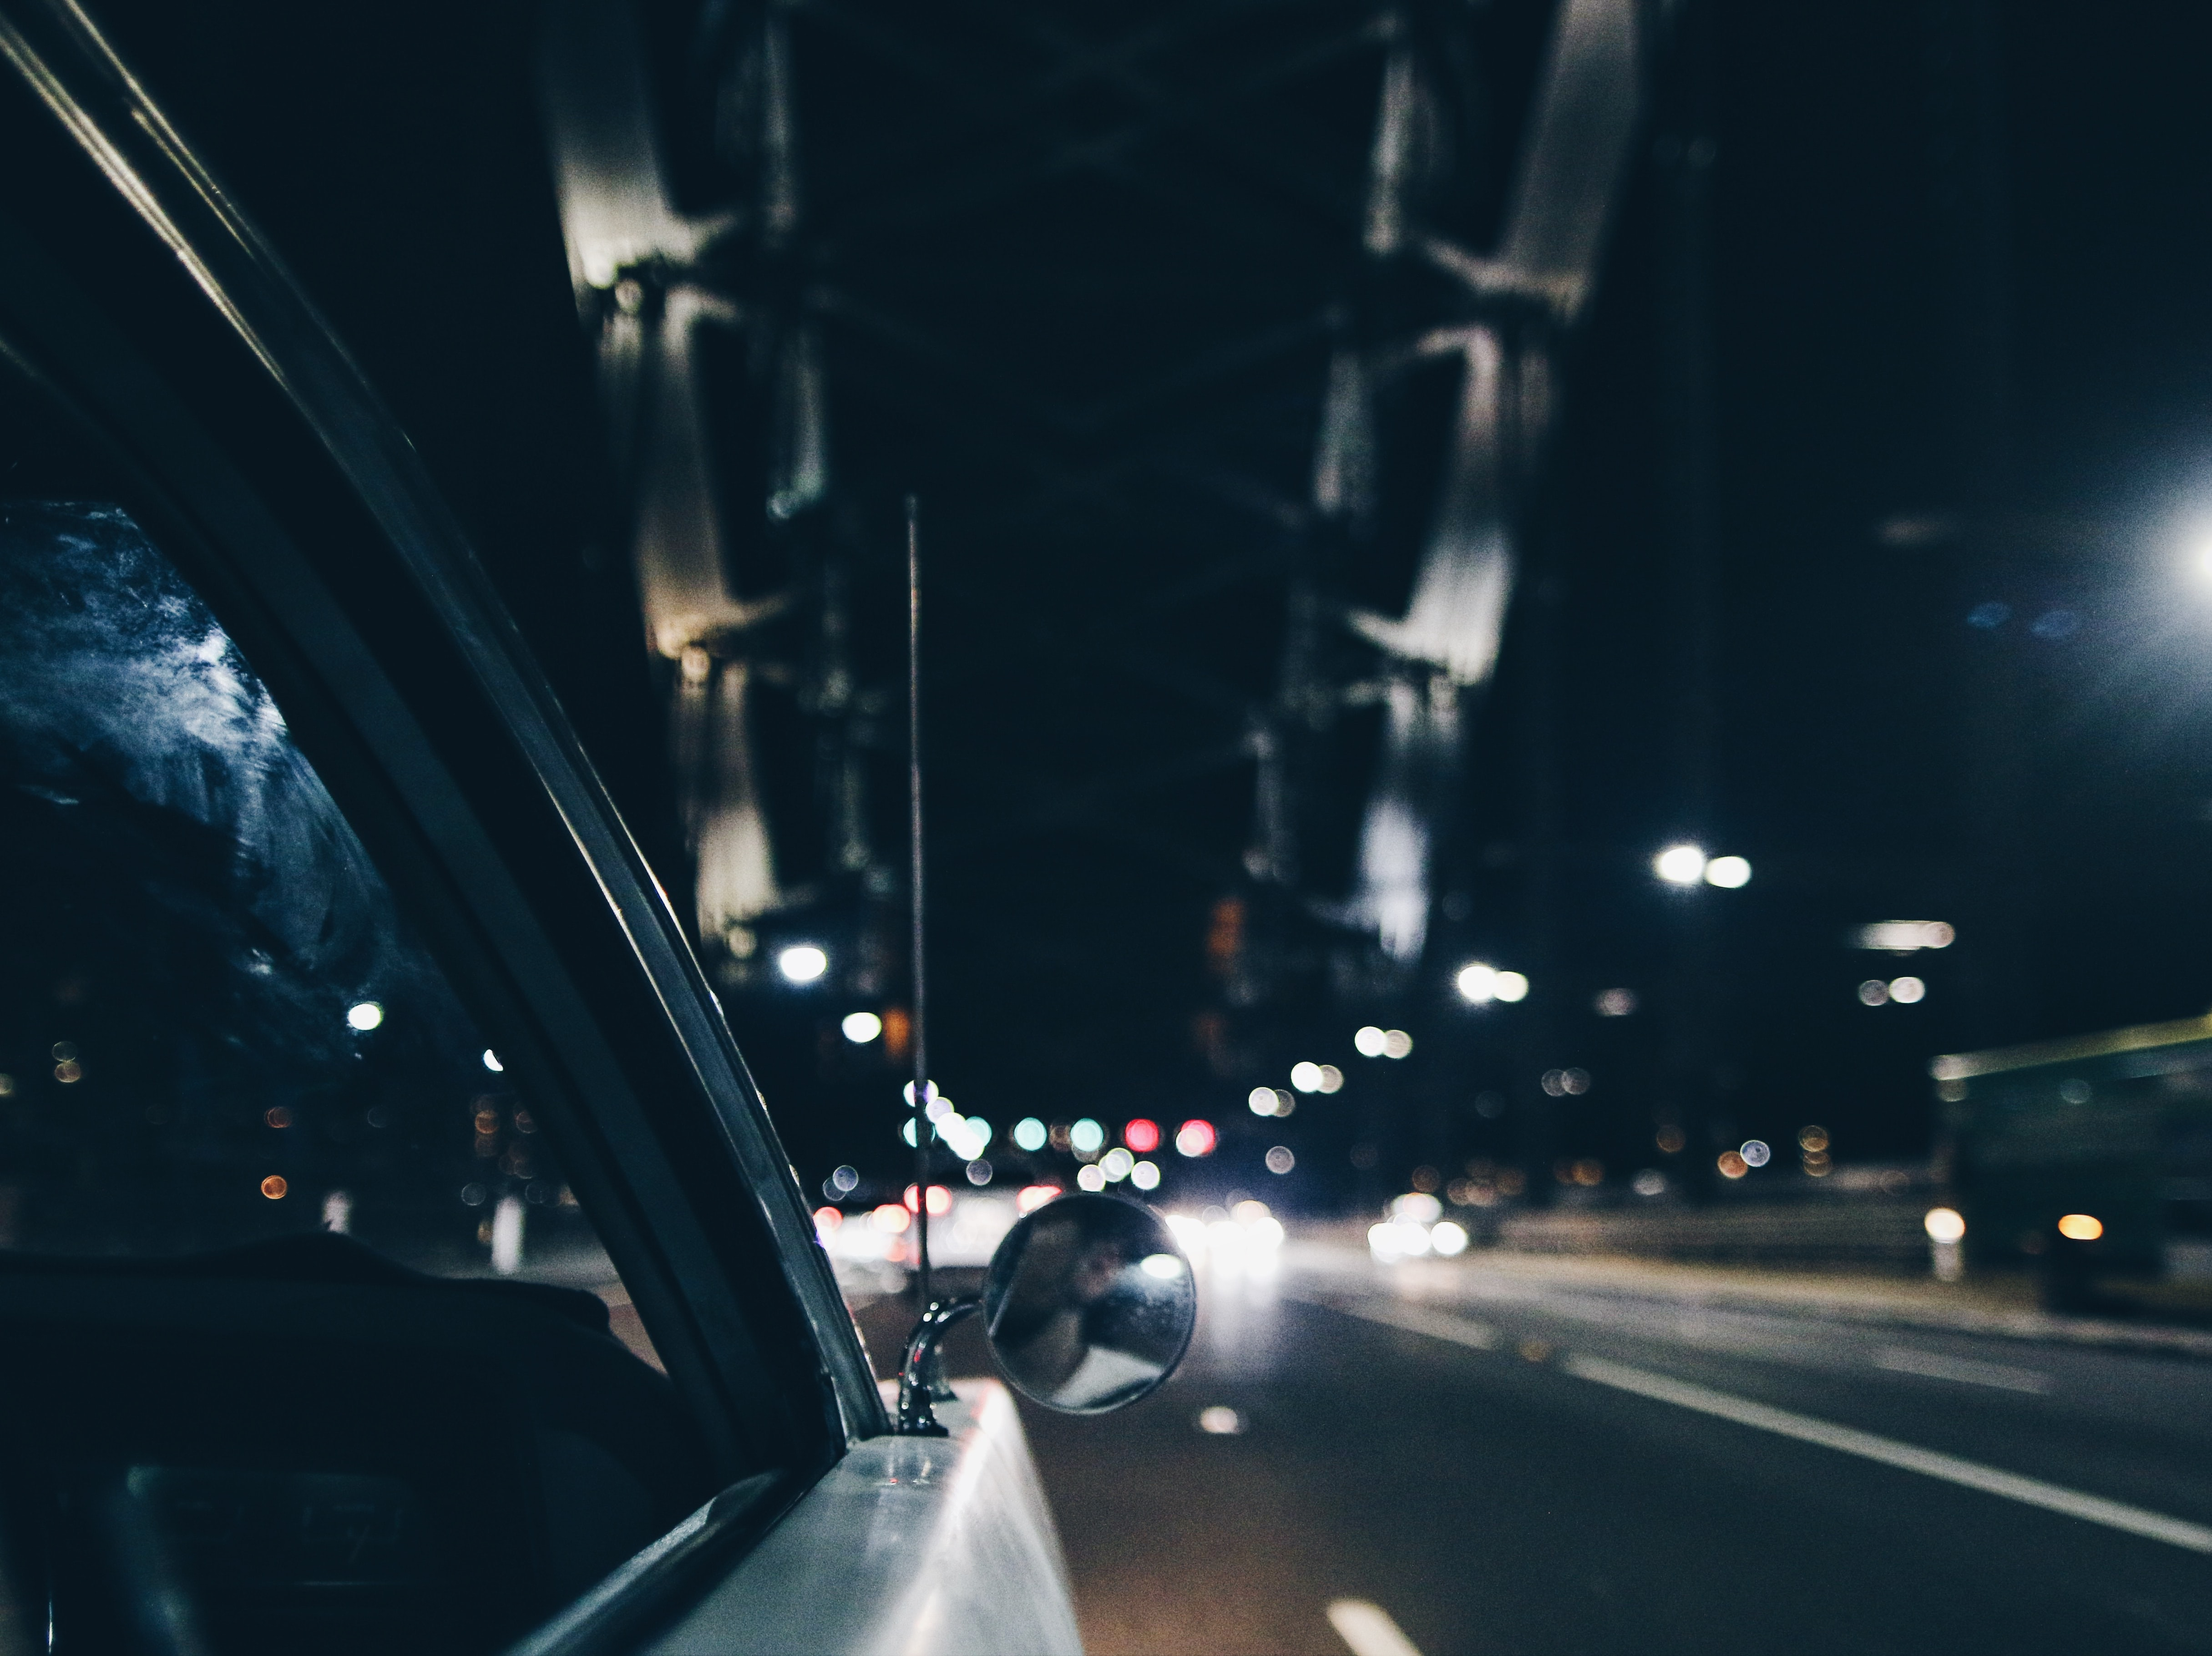 The view from the side of a car on a bridge at night with bokeh effect